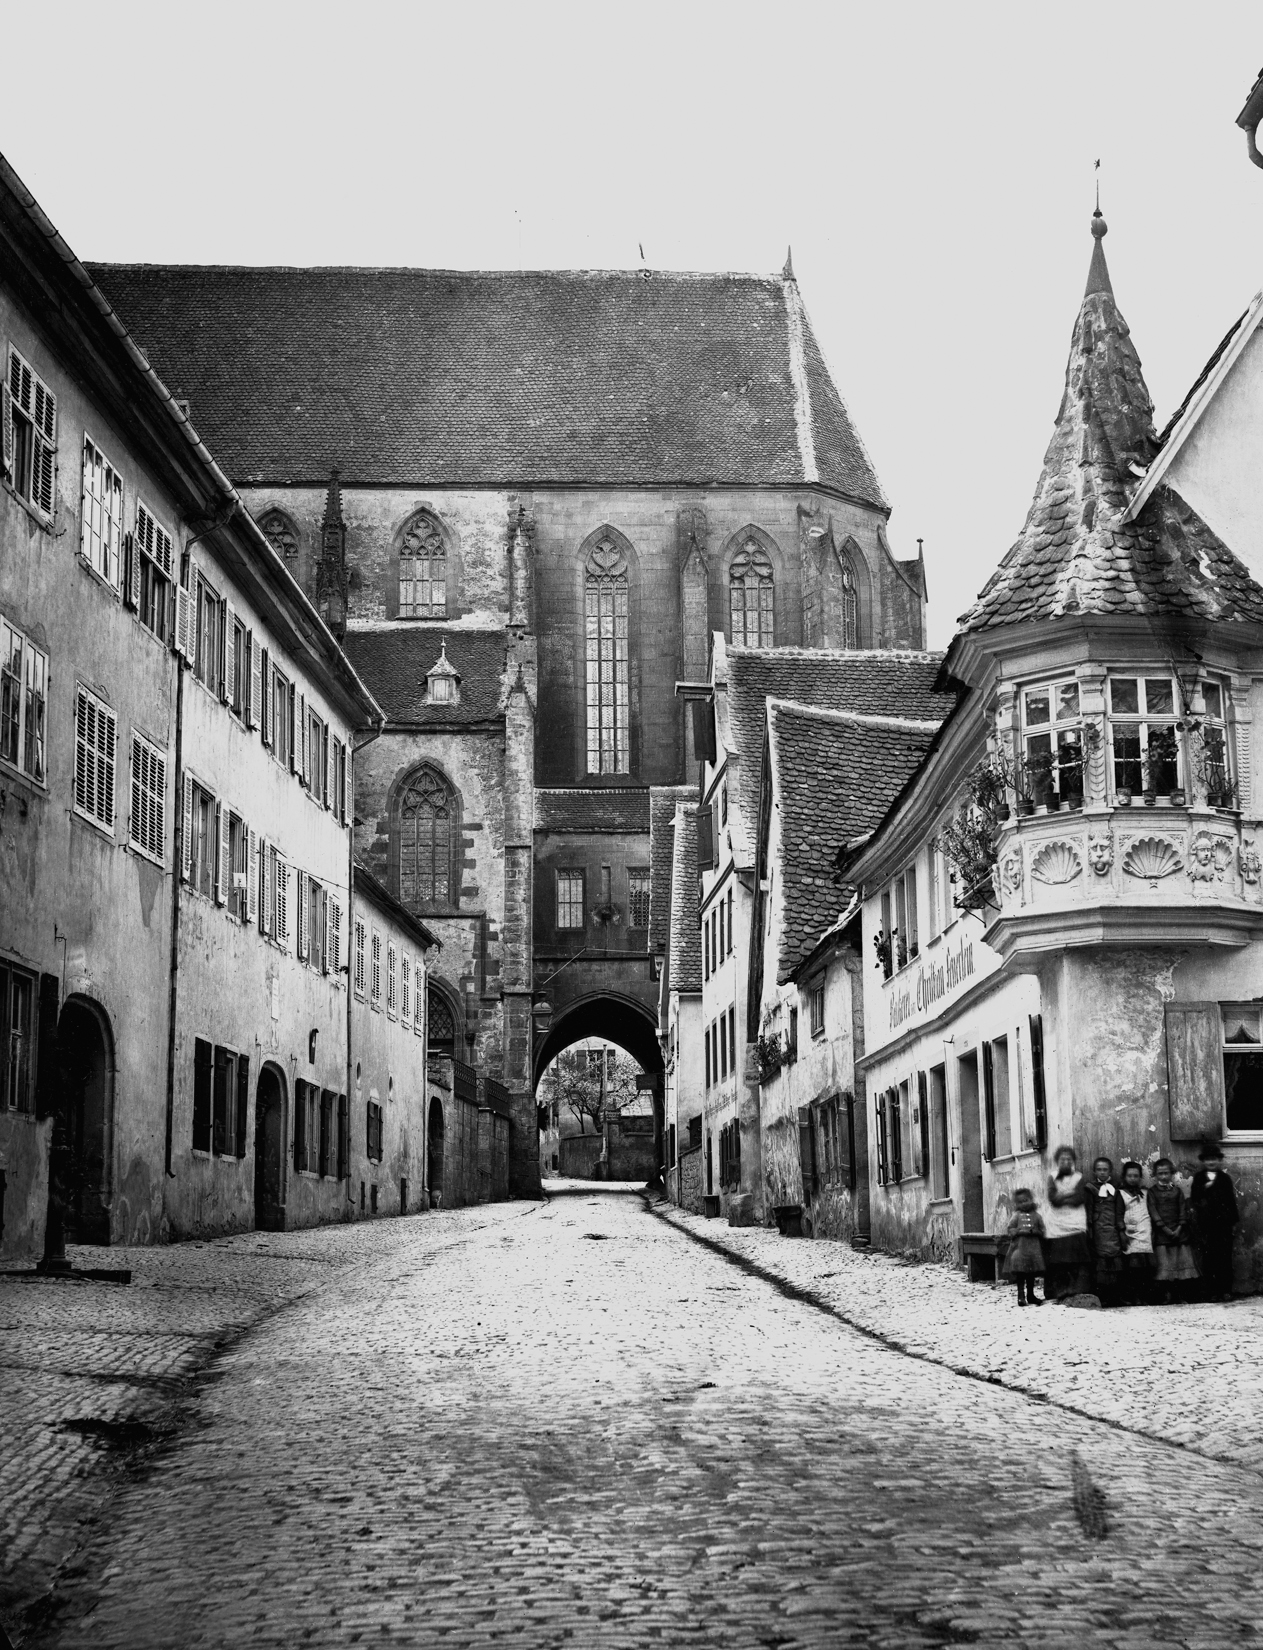 [Katherine M. Boivin, University of Montreal, Candidate for Tenure-Track Medieval Position ] St. Jakob in Rothenburg ob der Tauber